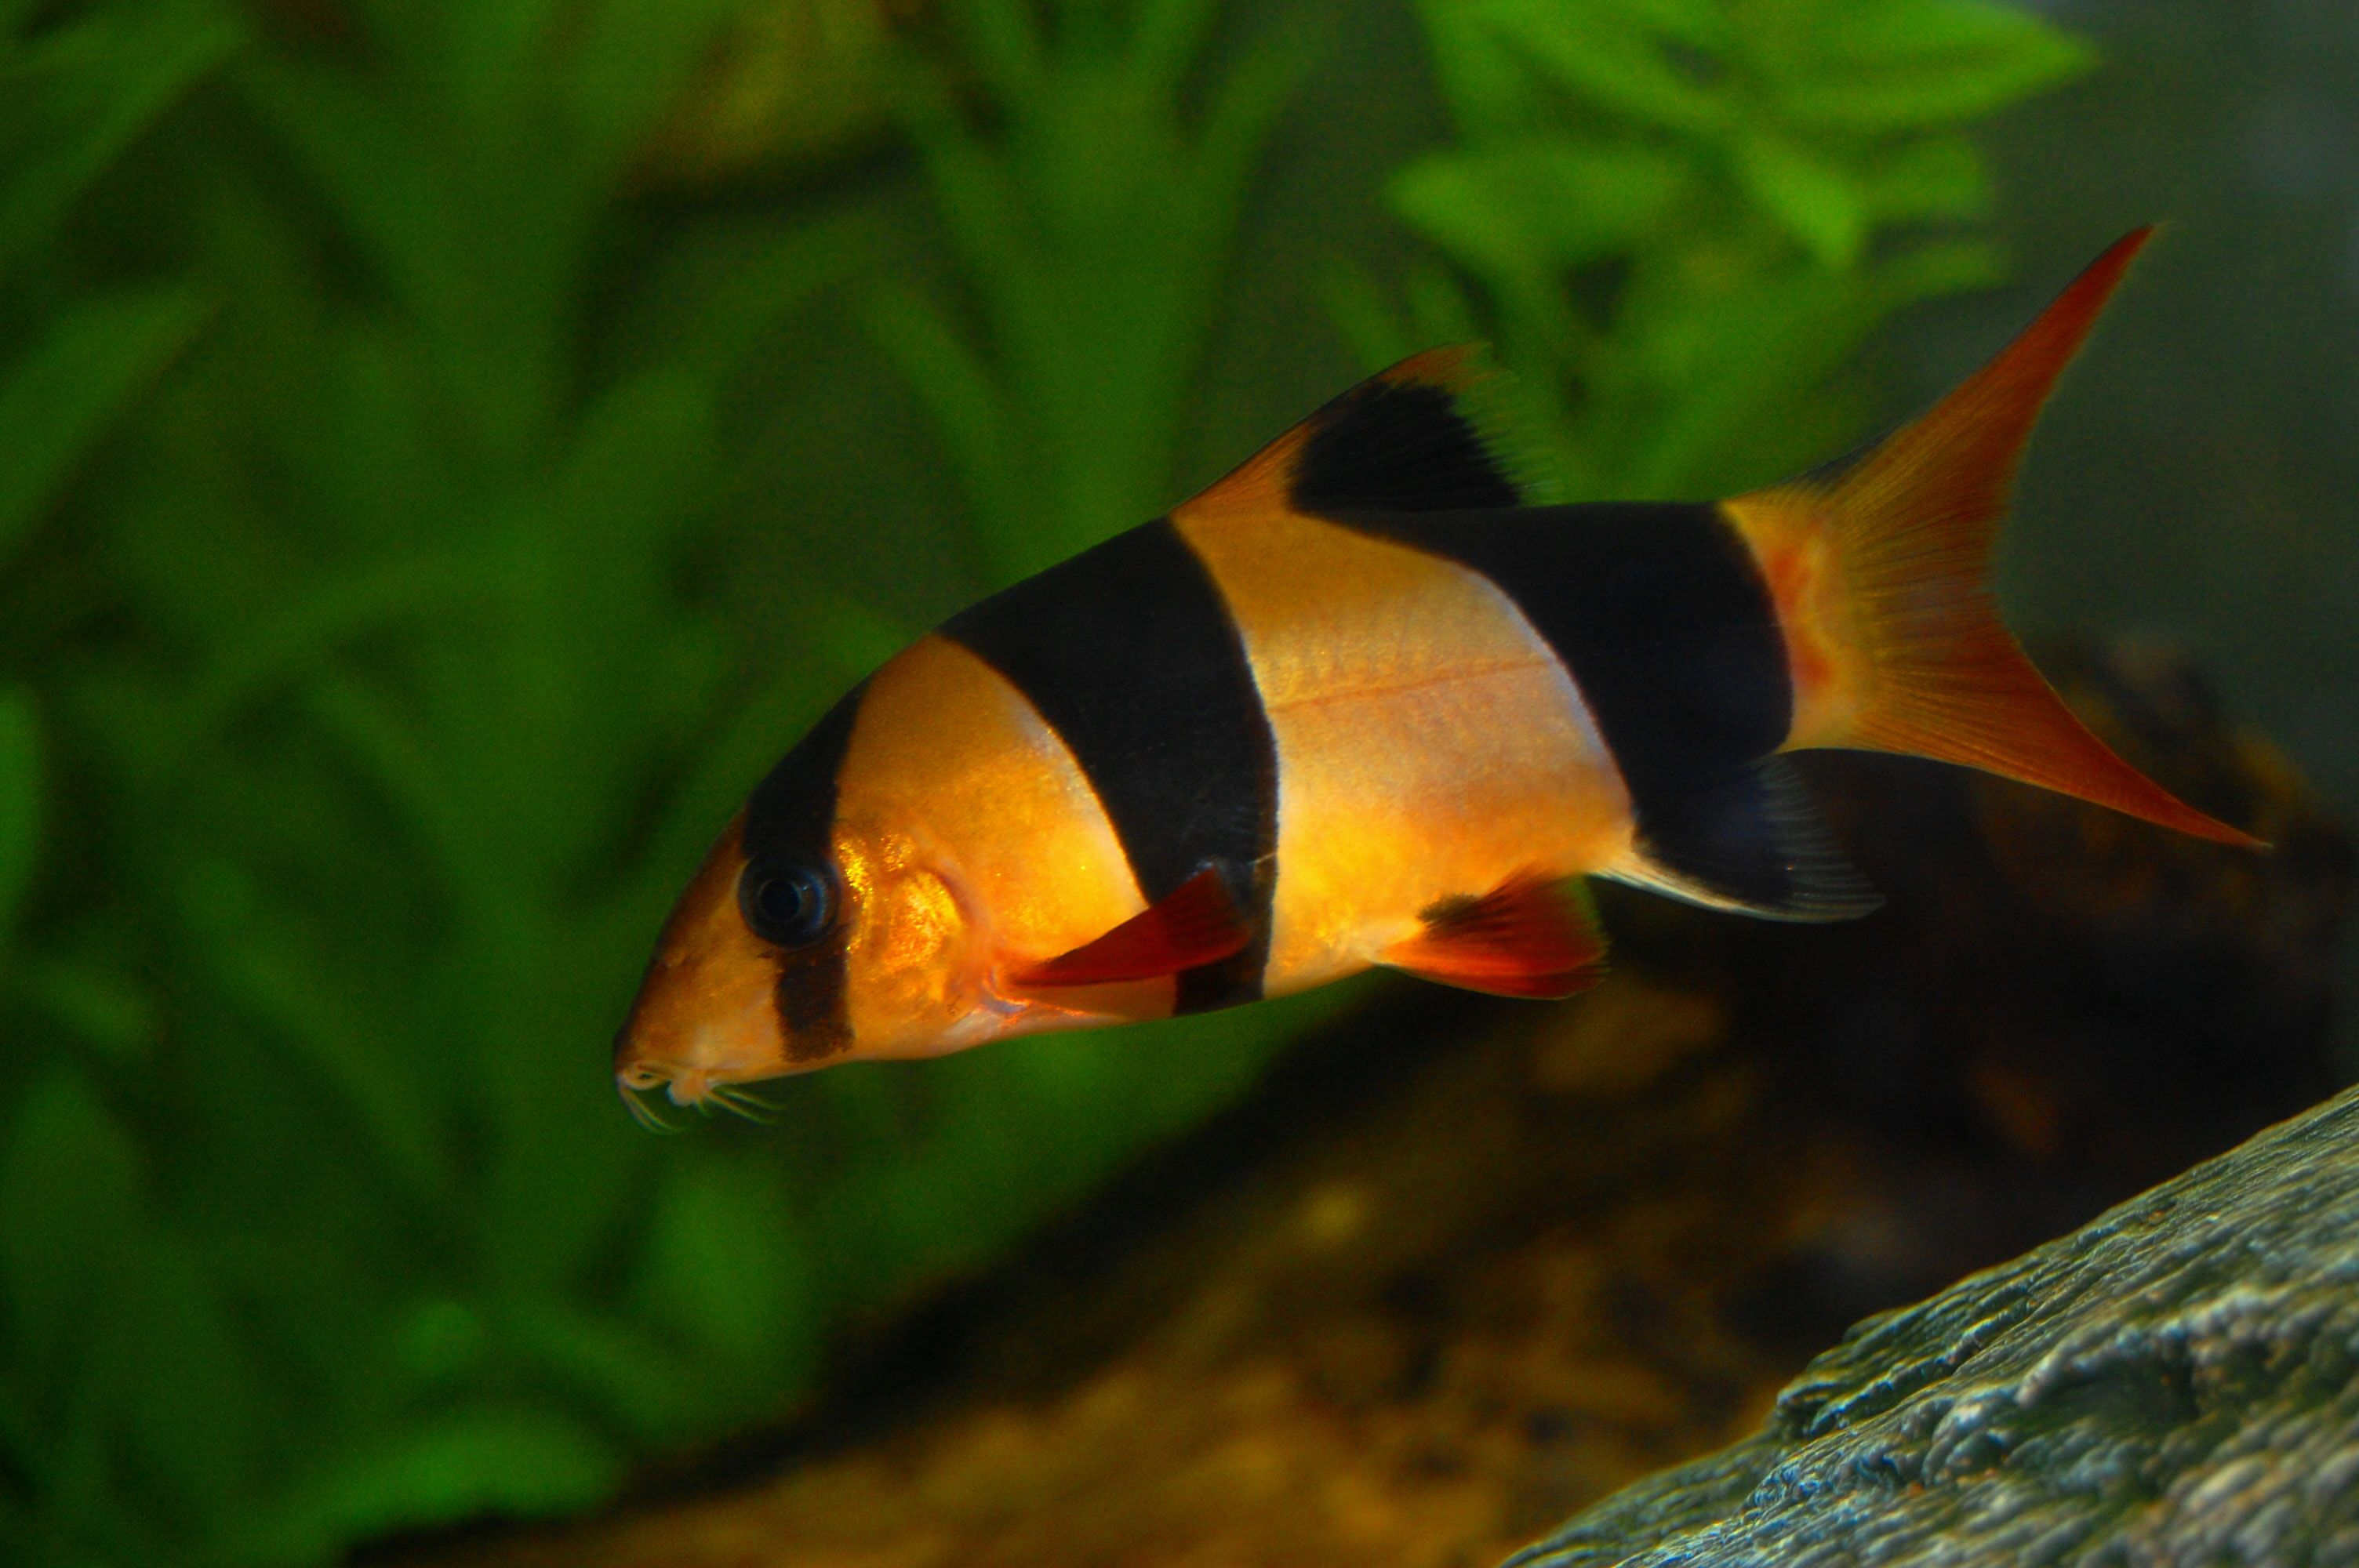 Freshwater aquarium fish loach - Want To Learn More About Clown Loach Check Out The Clown Loach Wiki And If